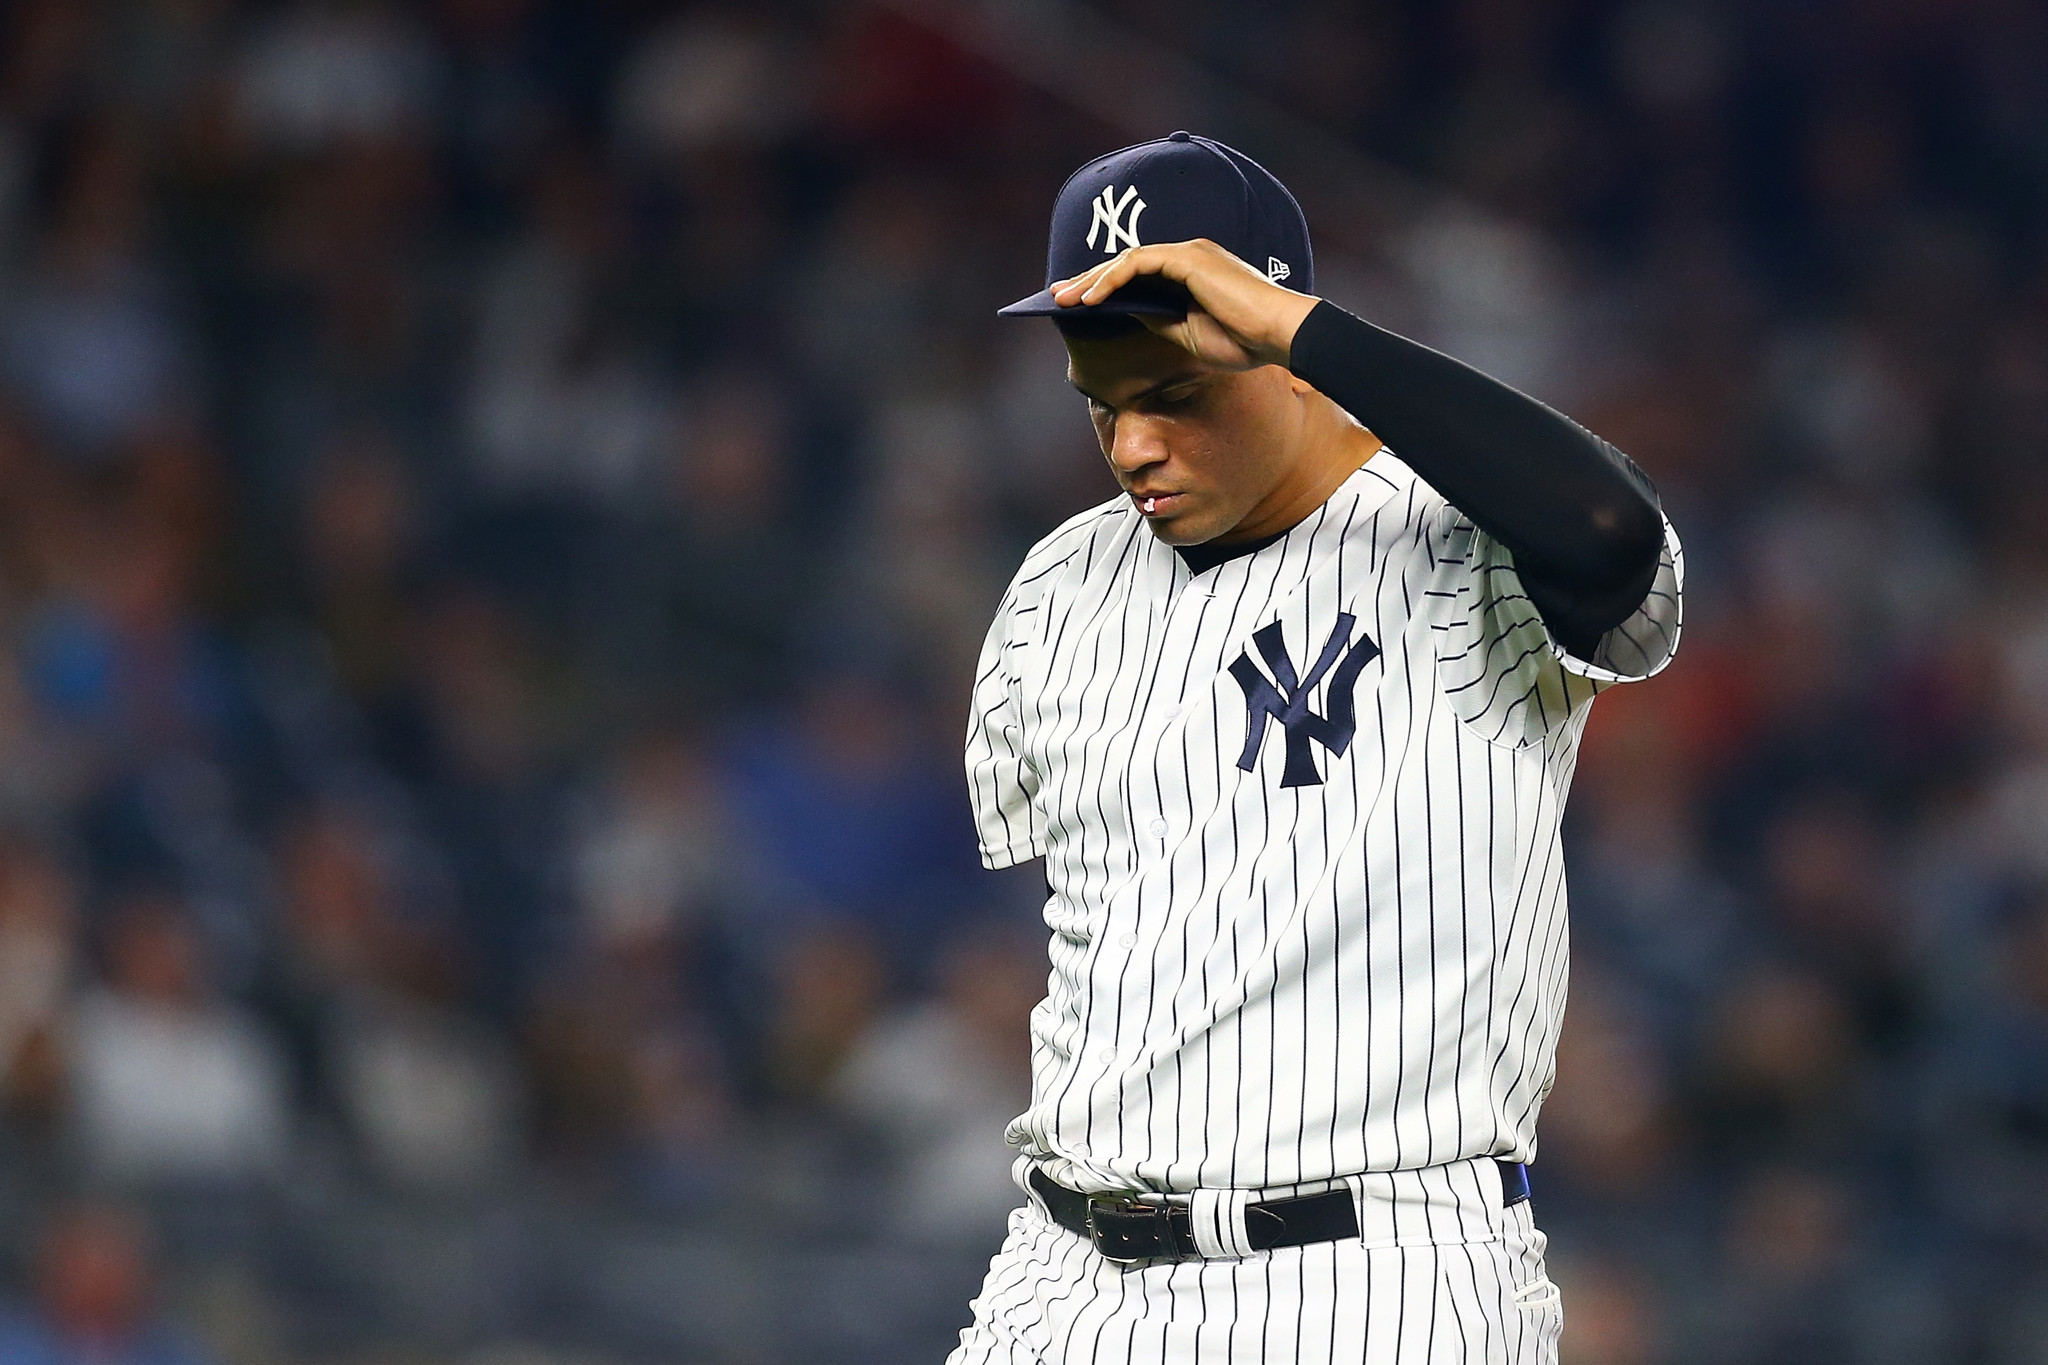 Dellin Betances may very likely not be a Yankee in 2020